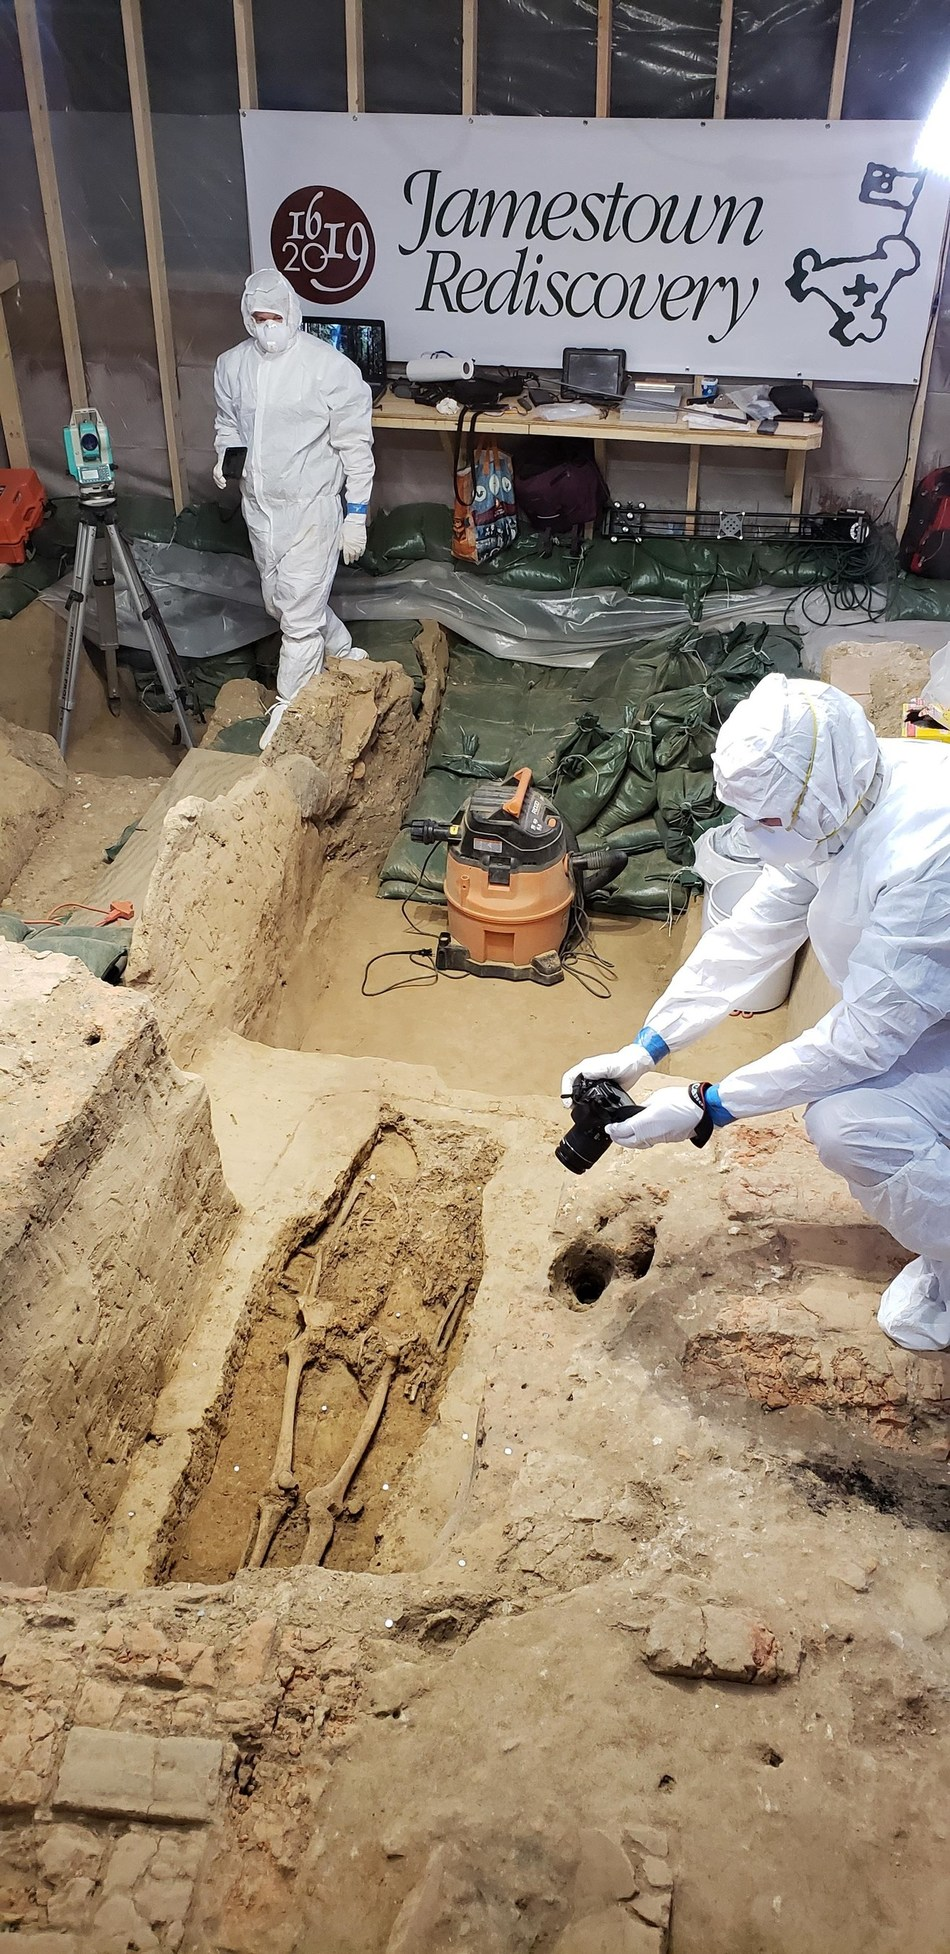 Archaeologists at Jamestown Rediscovery announced the discovery of 400-year-old human remains at the site of the Jamestown 1617 church. Photo by Jamestown Rediscovery